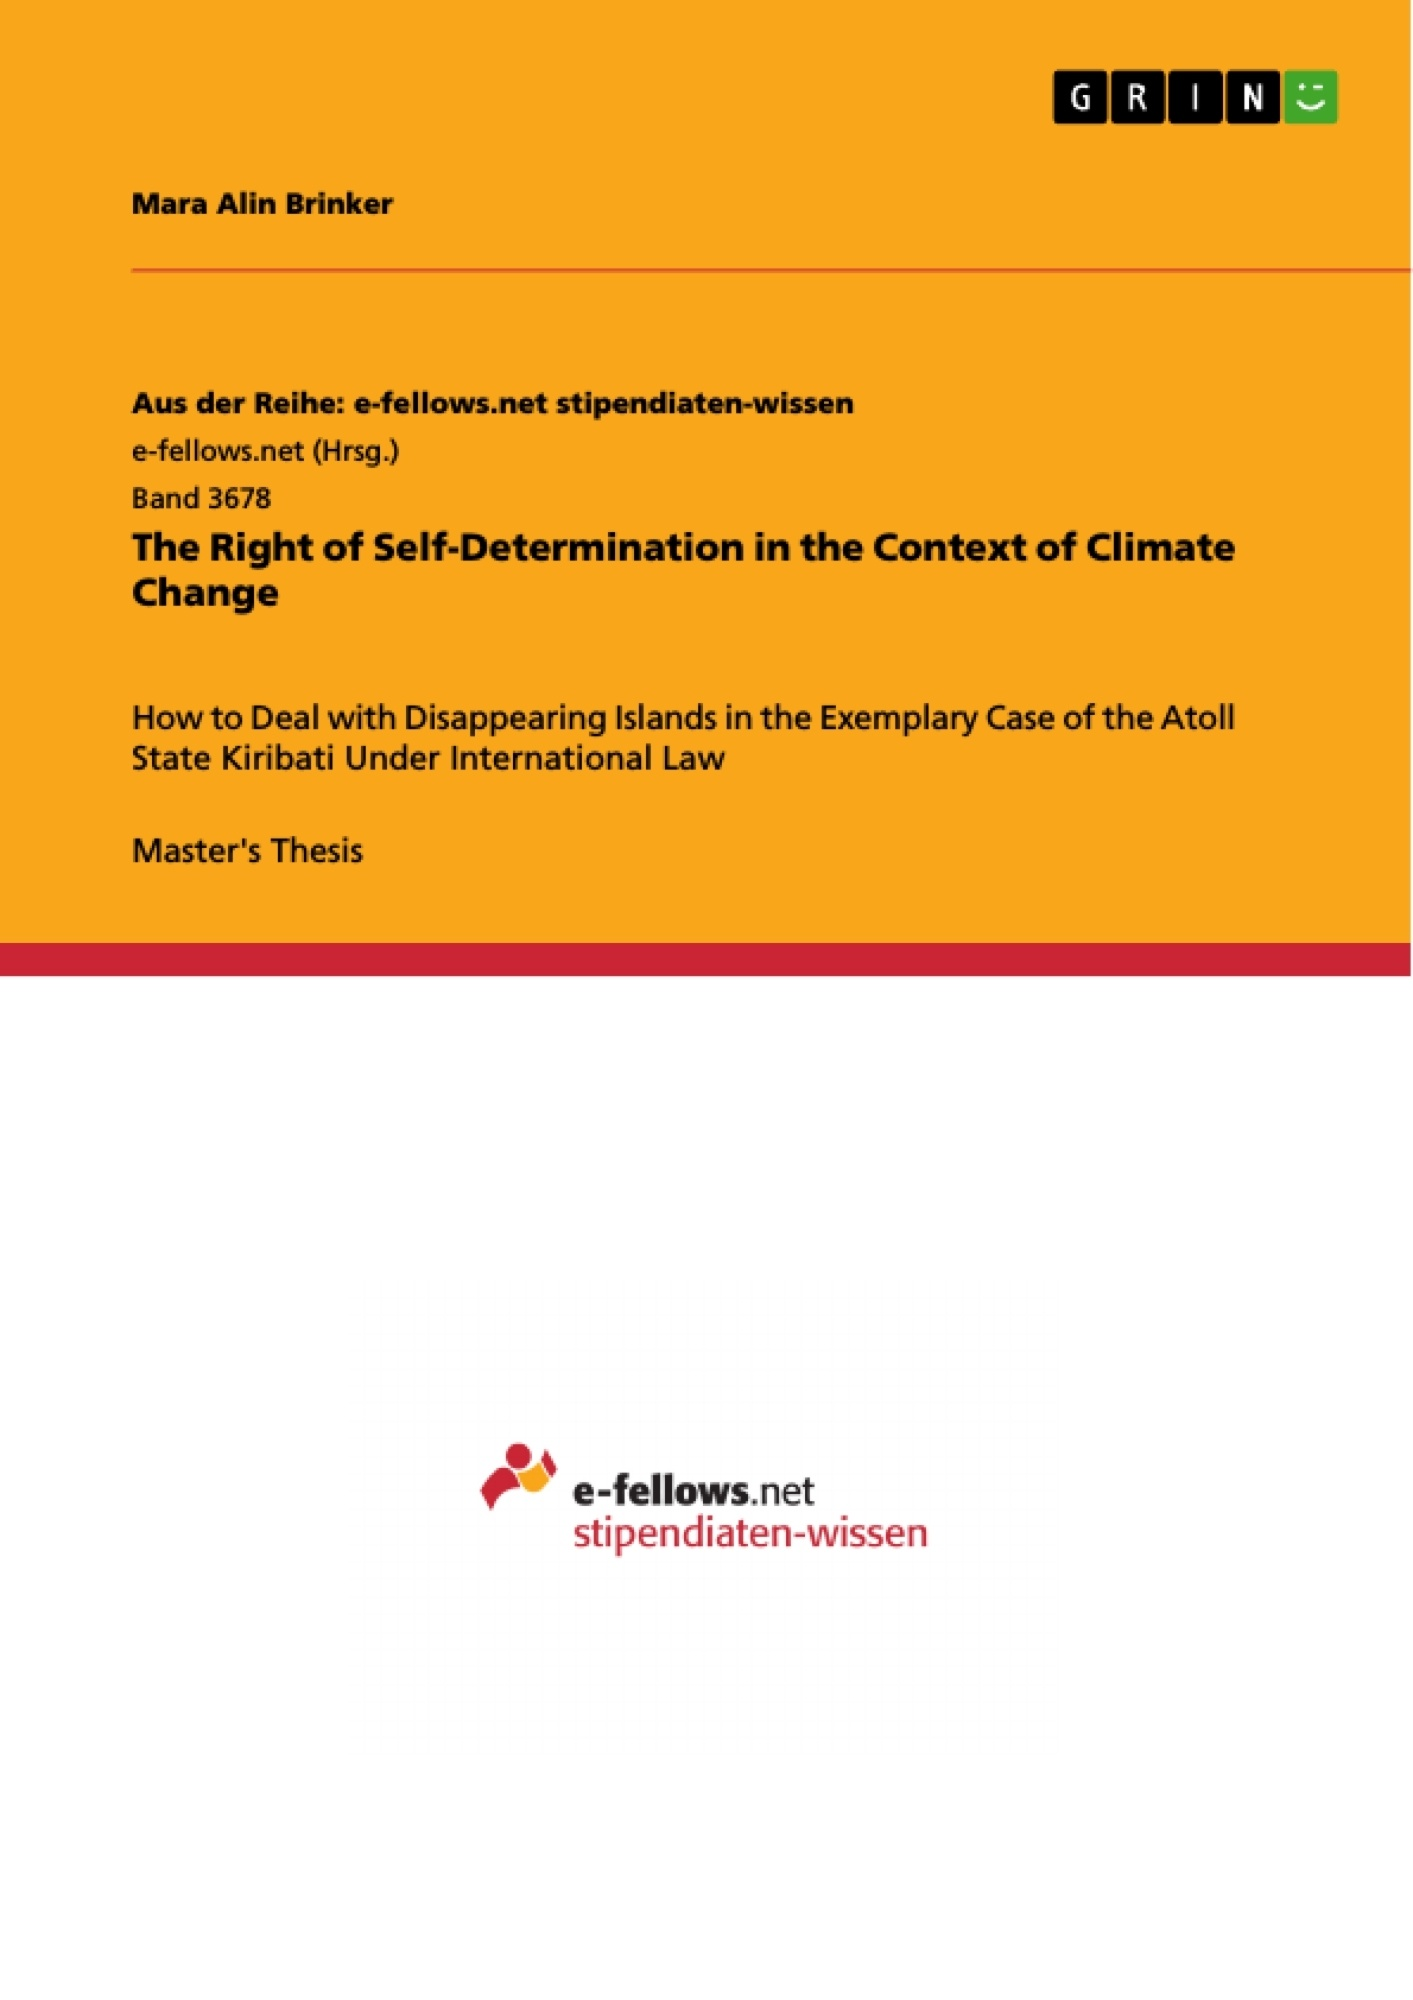 Title: The Right of Self-Determination in the Context of Climate Change